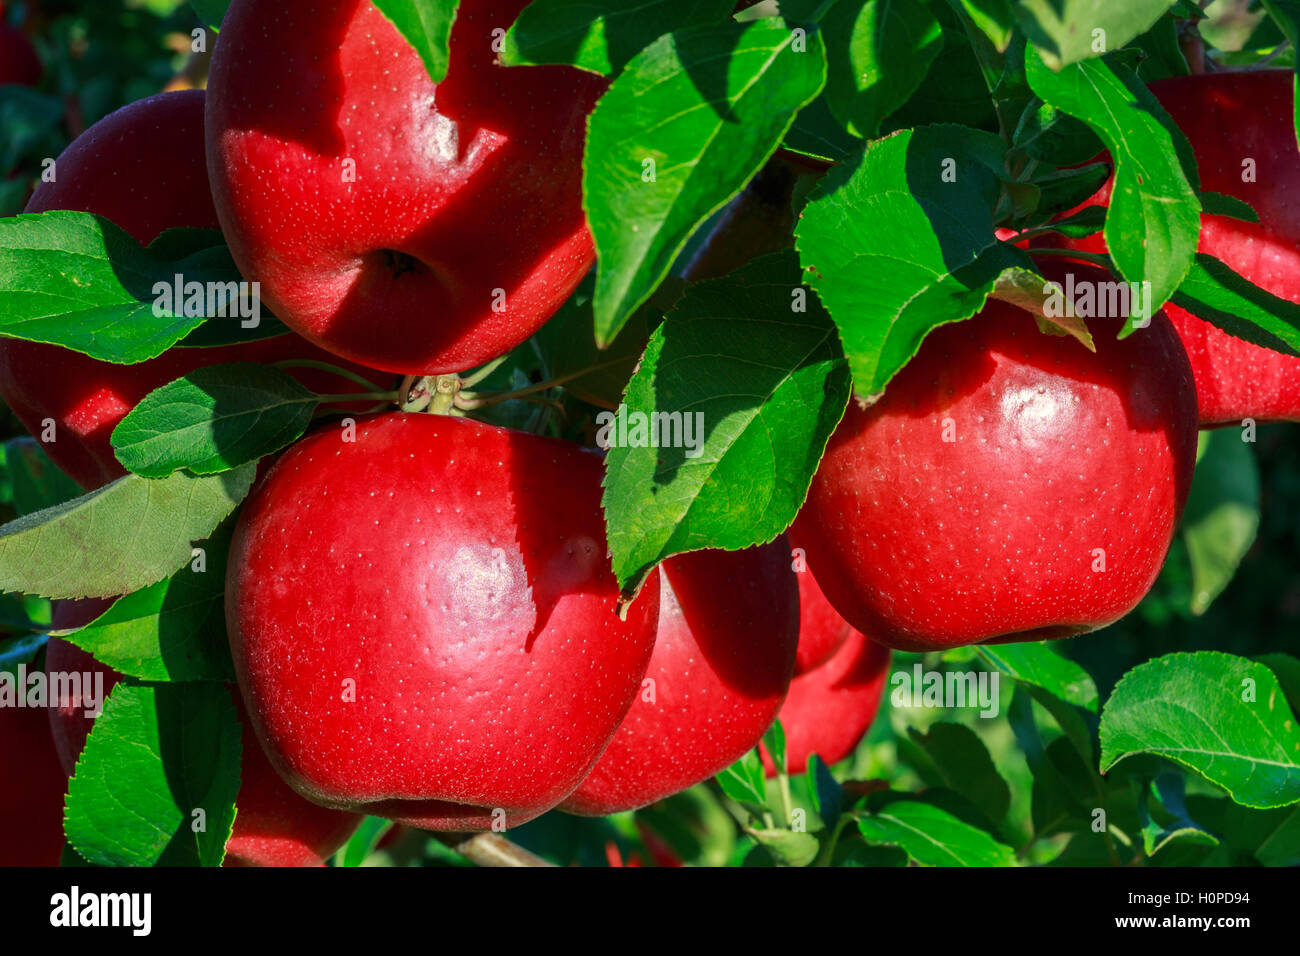 Honey Crisp apples on trees in the orchard. - Stock Image